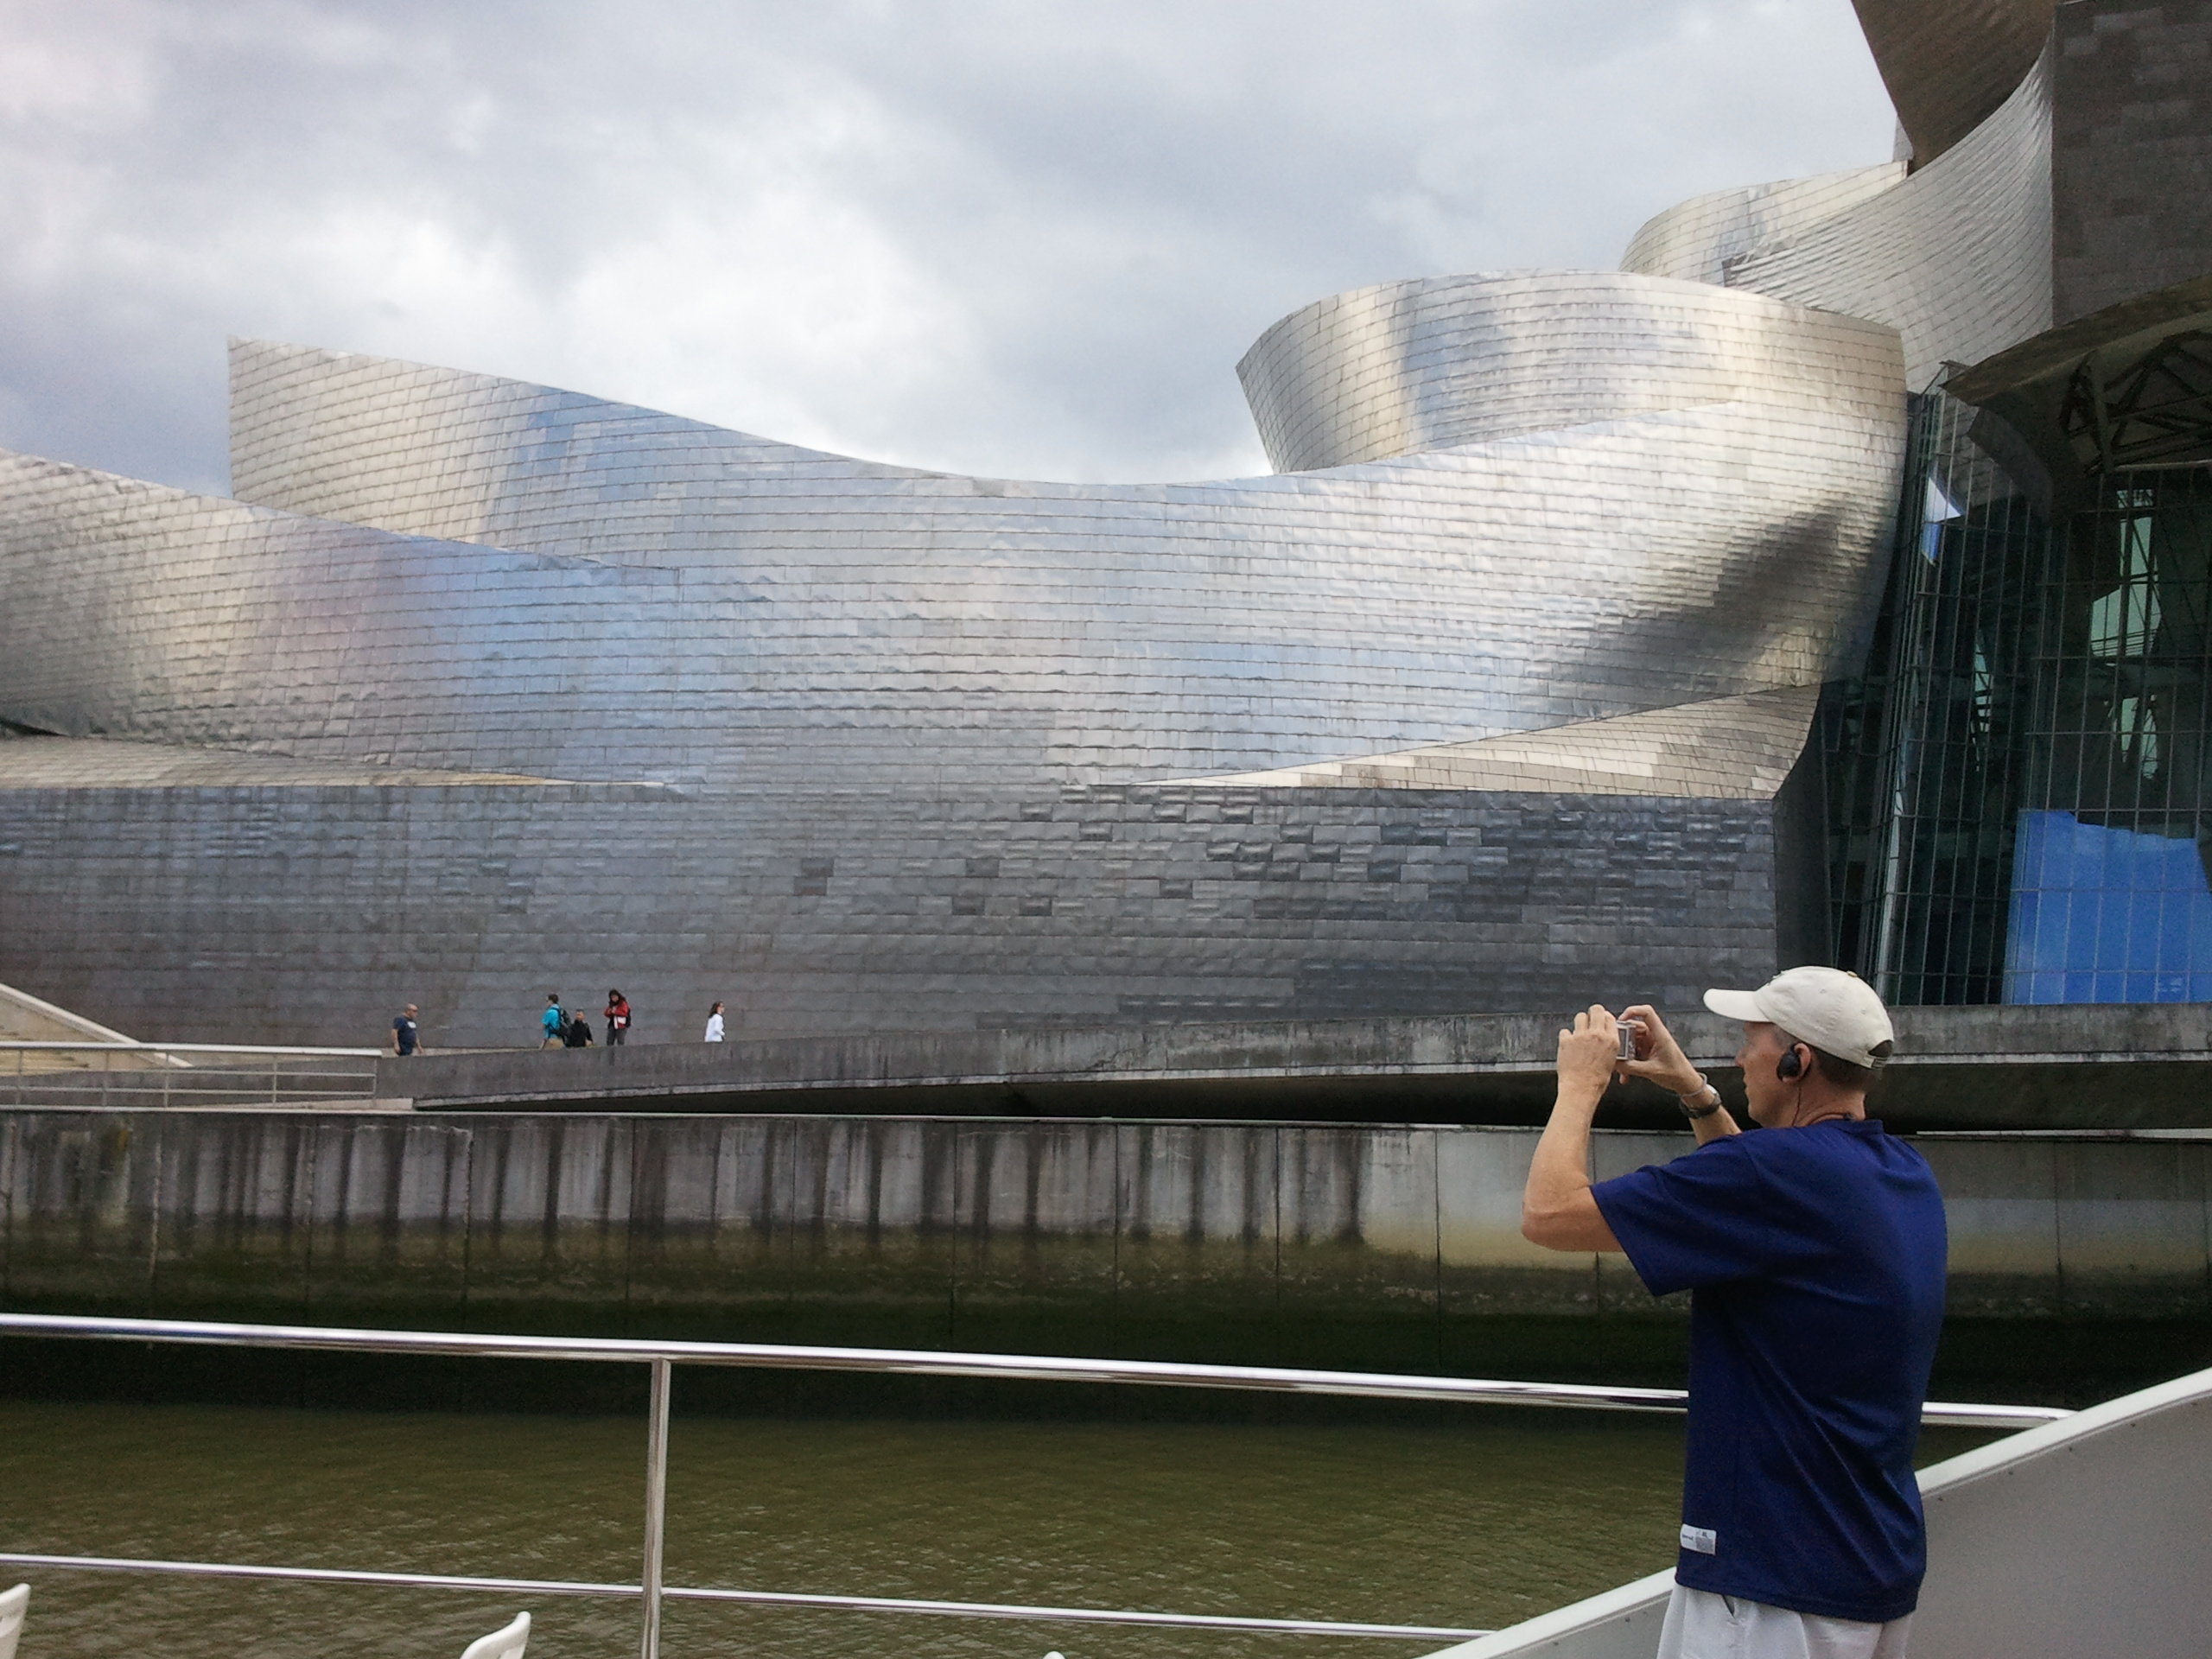 No one can resist taking pictures of Bilbao's Guggenheim museum (photo credit: Dr. Jim Paluzzi)